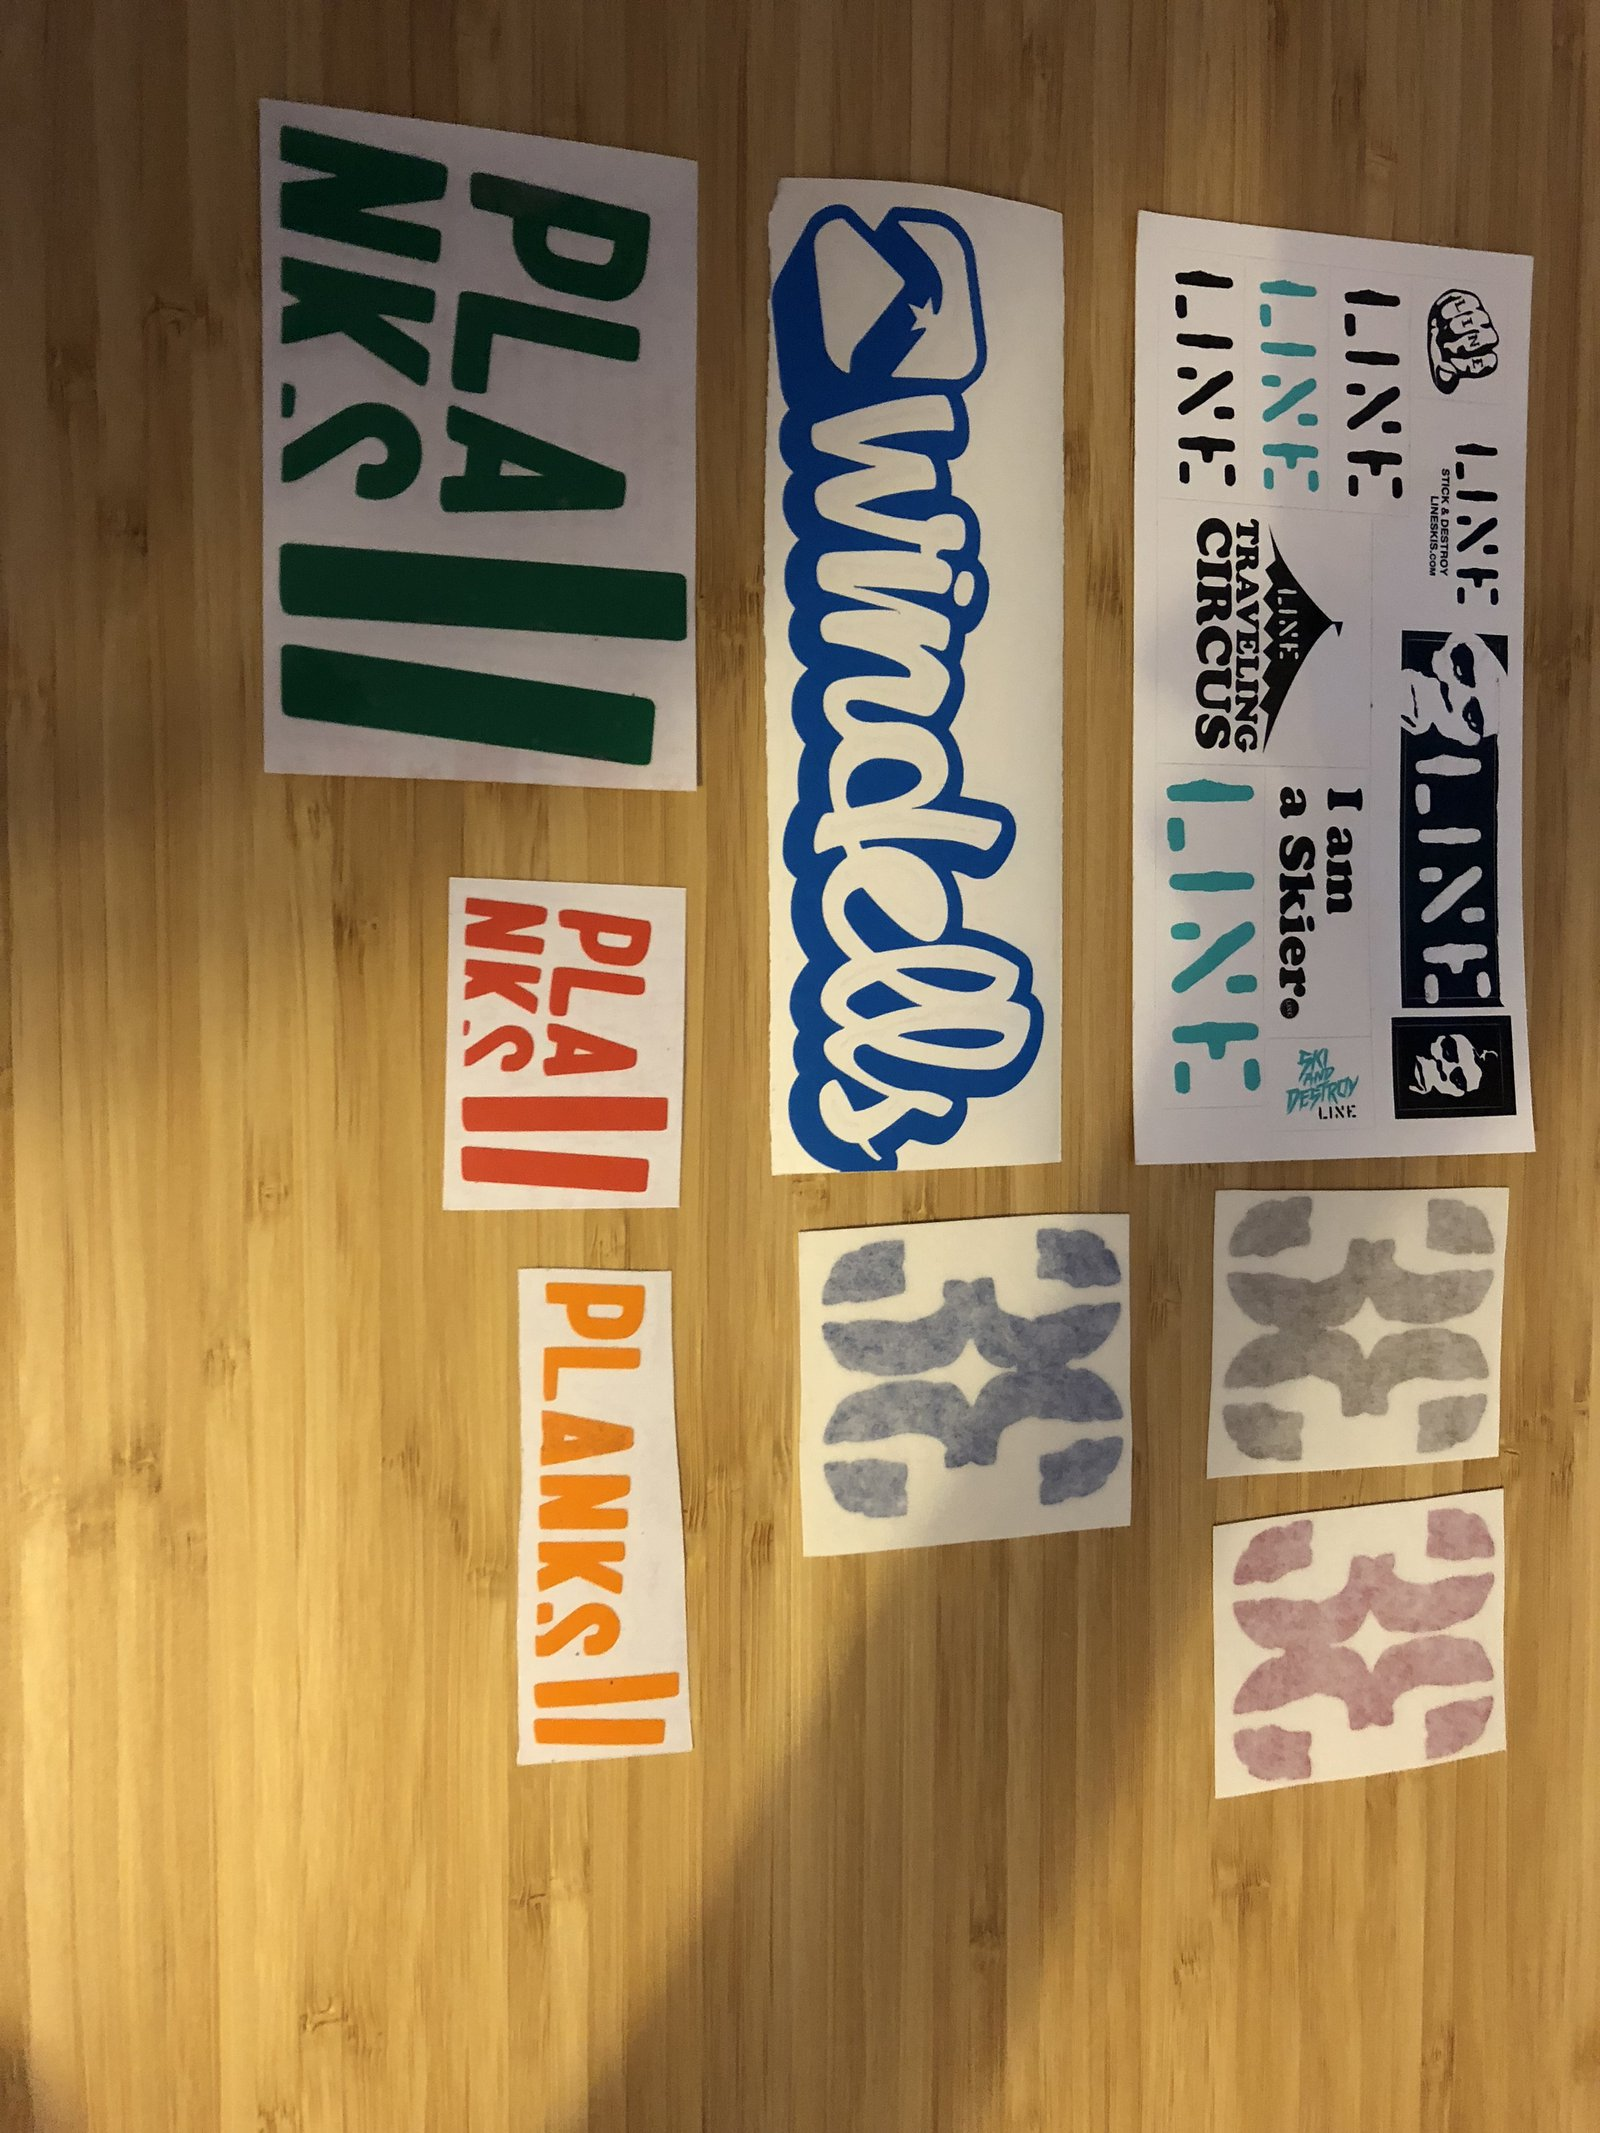 Stickers for s.j.mitchell